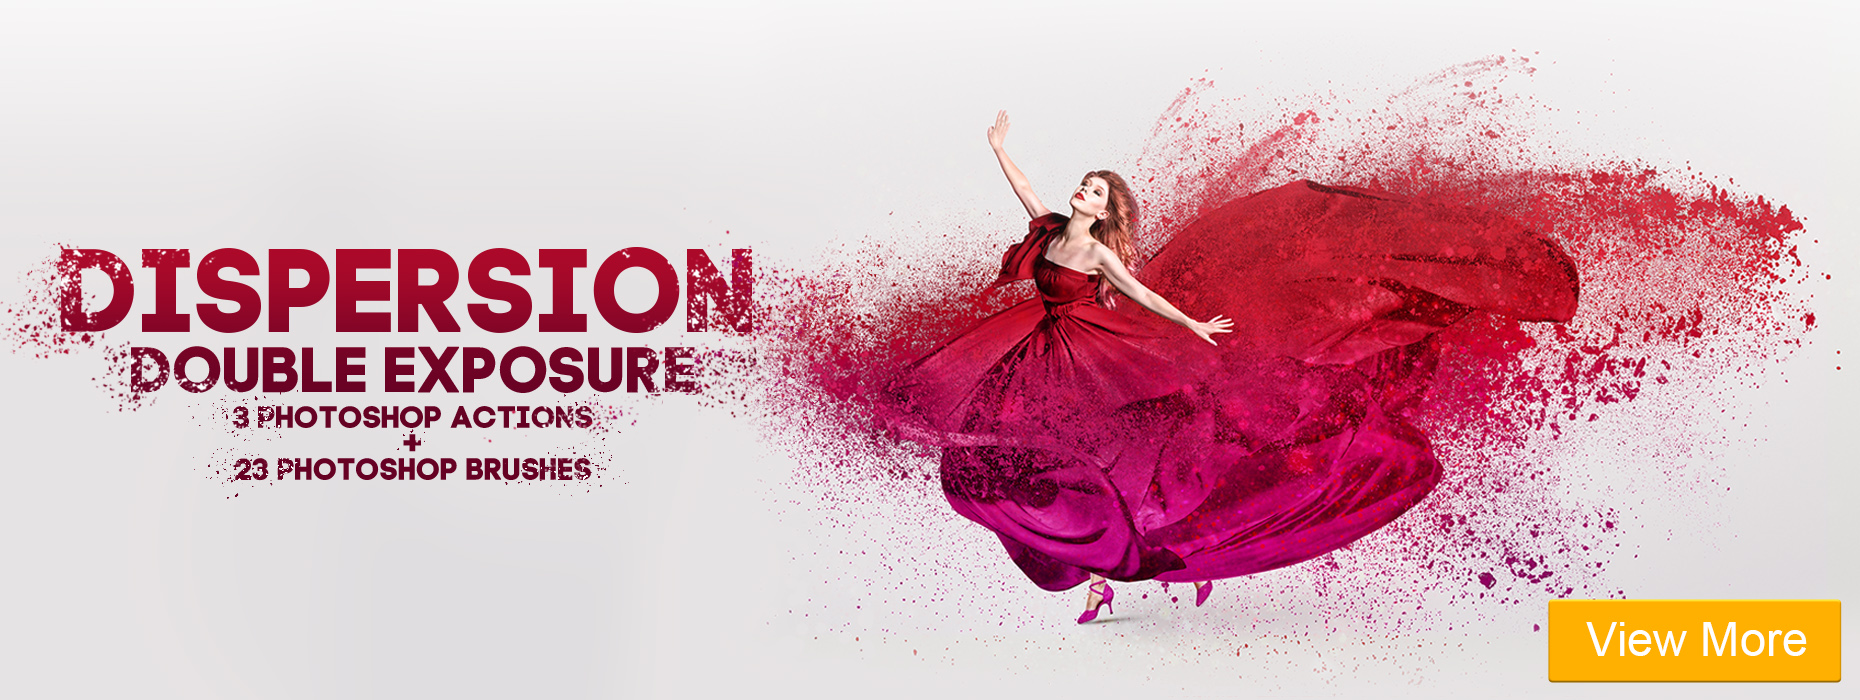 free hdr photoshop action dispersion double exposure banner woman in red